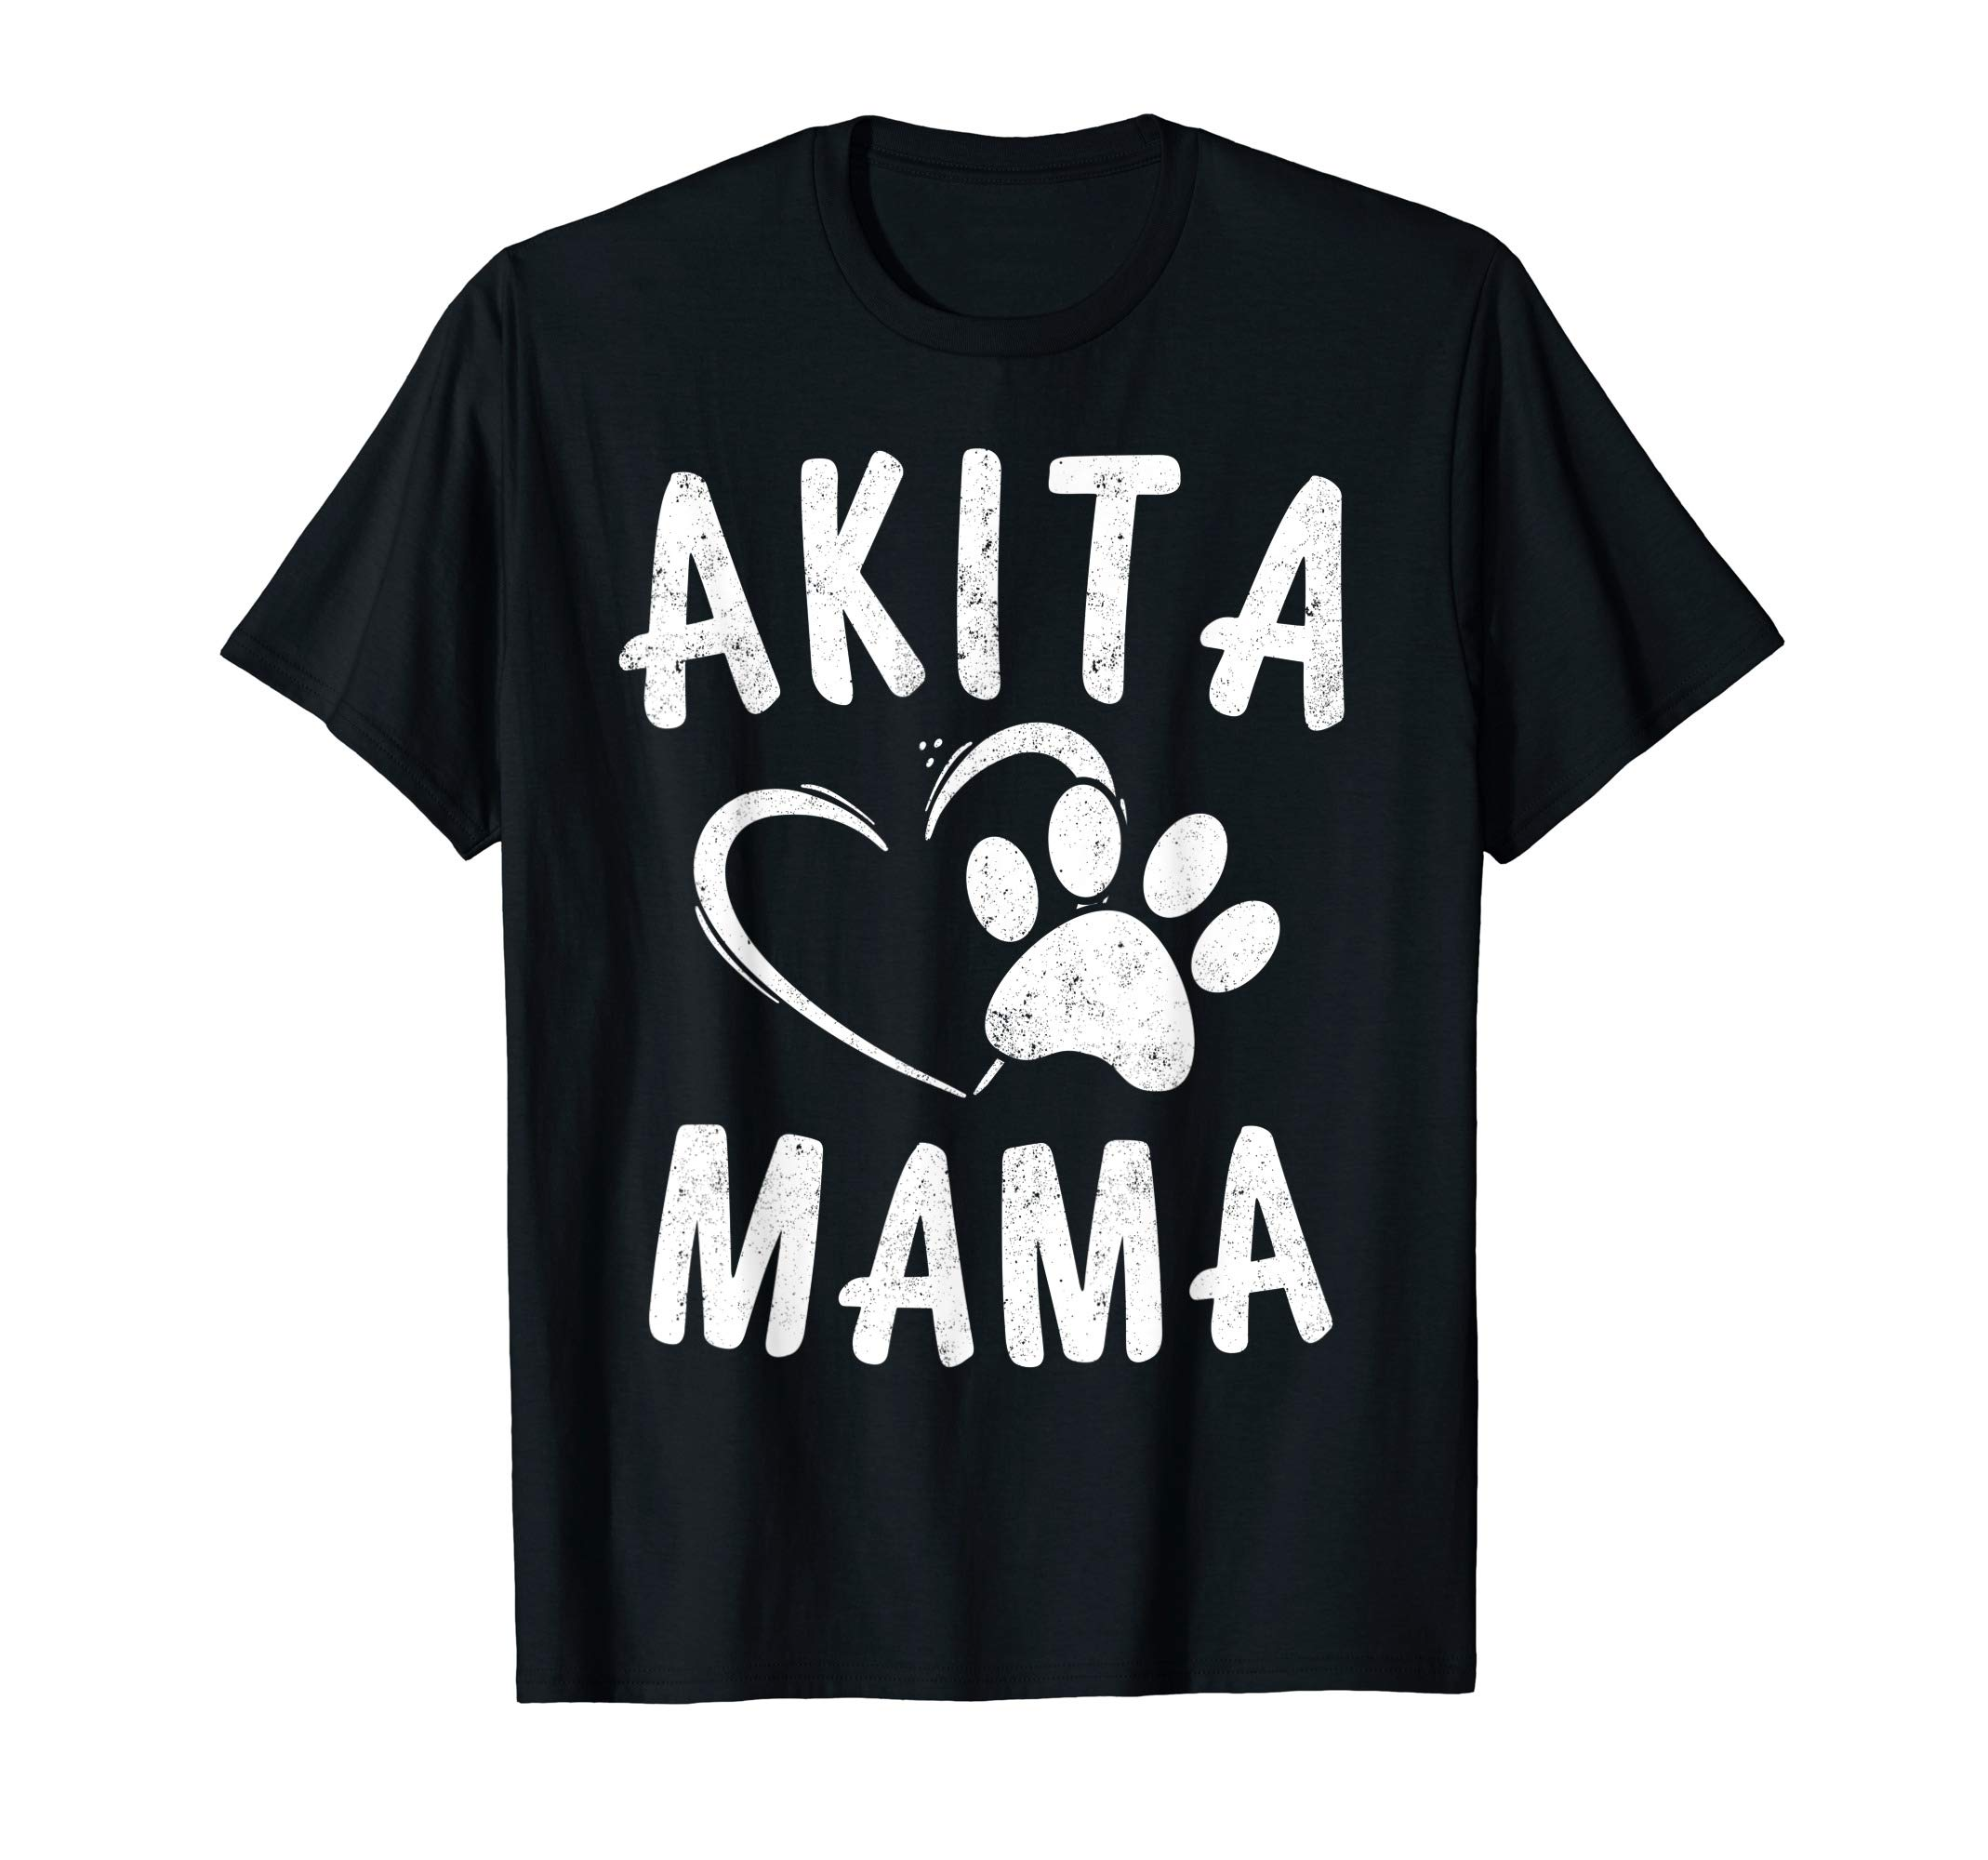 Fun Akita Mama Gift Pet Lover Apparel Dog Akita Mom T-Shirt 1